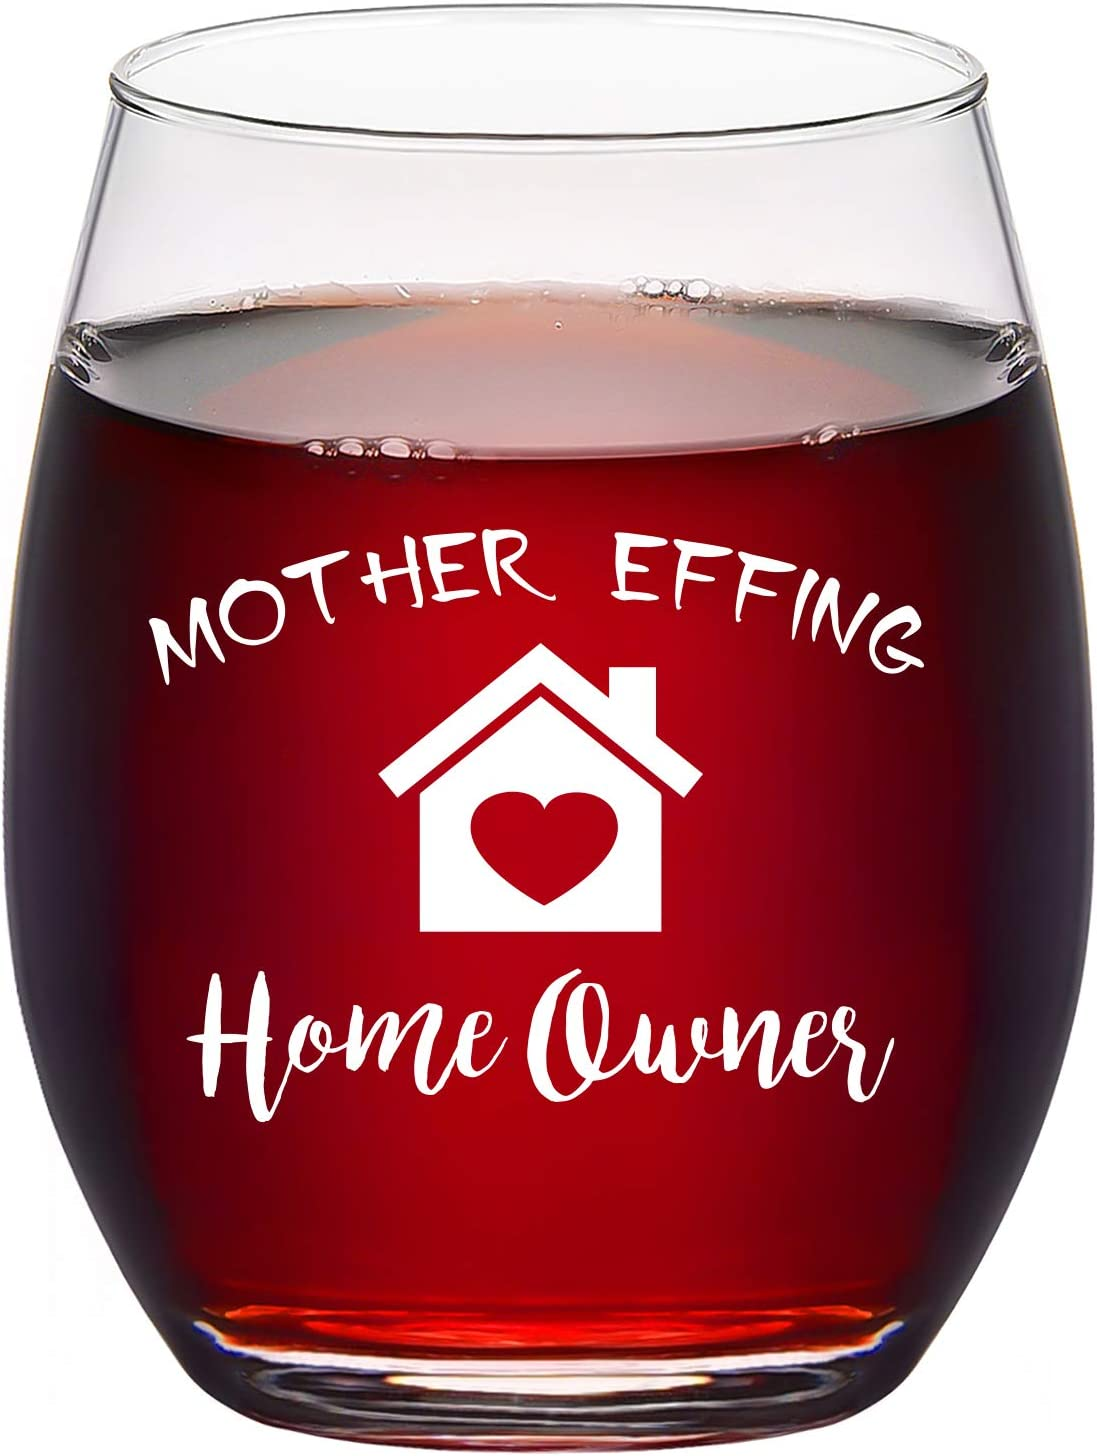 Housewarming Gifts, Mother Effing Homeowner Stemless Wine Glass, Gift Idea for New Home Friend Women Men First Time Home Owner Christmas Mother's Day, Funny Housewarming Presents, 15Oz